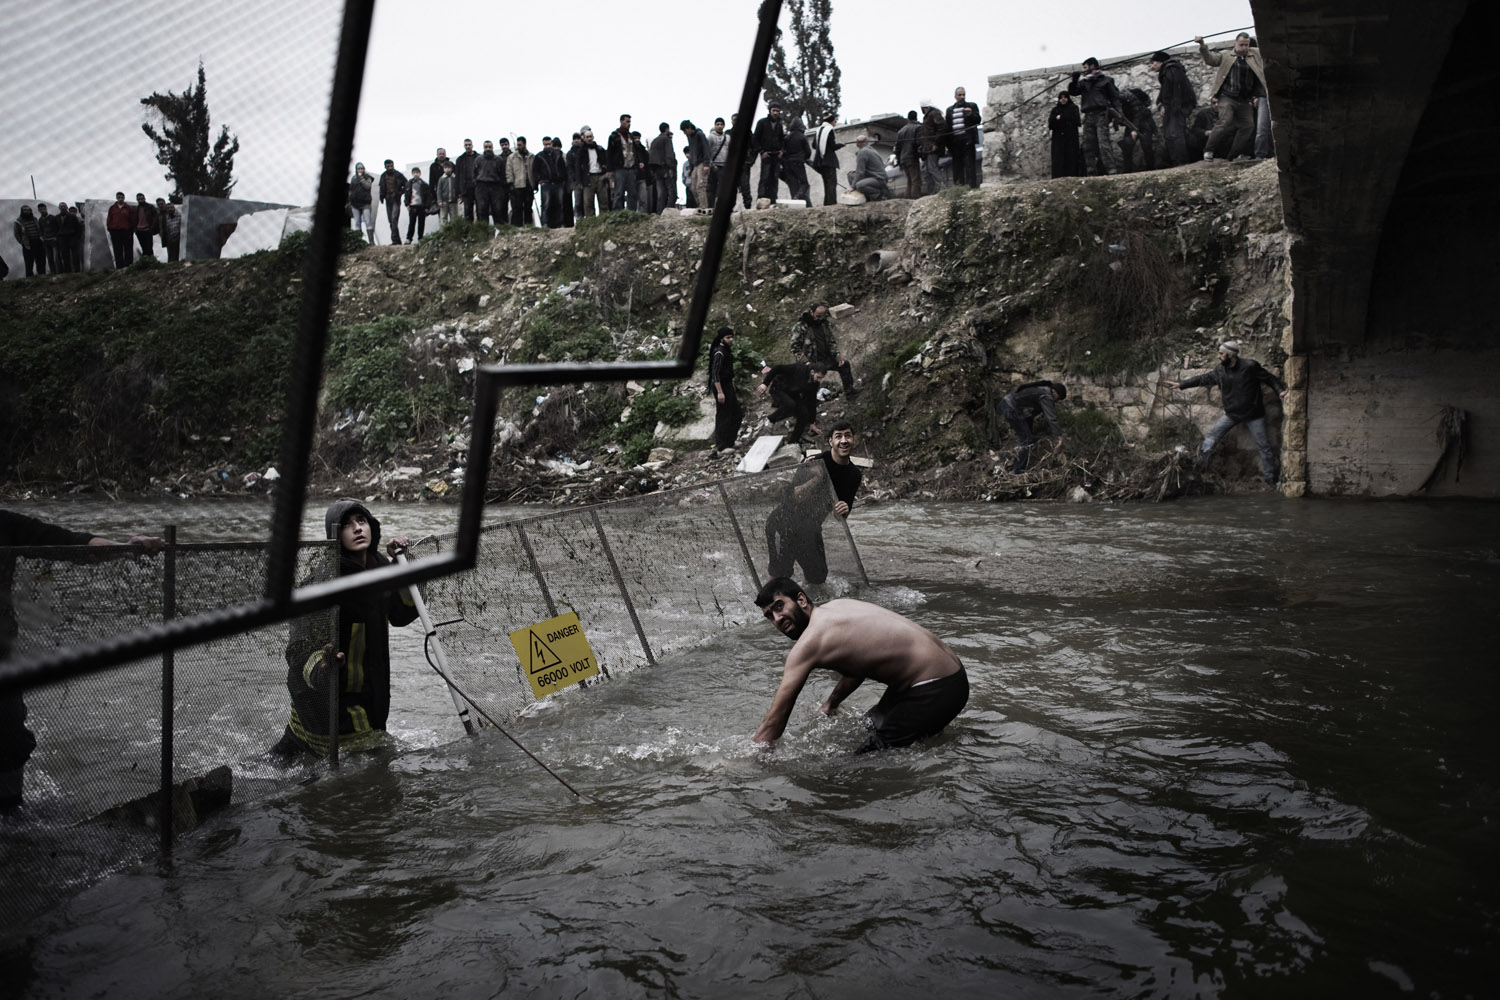 The day after victims of the massacre were first discovered, officials moved fencing into the river to help catch additional bodies as they floated downstream near Aleppo, Jan. 30, 2013.